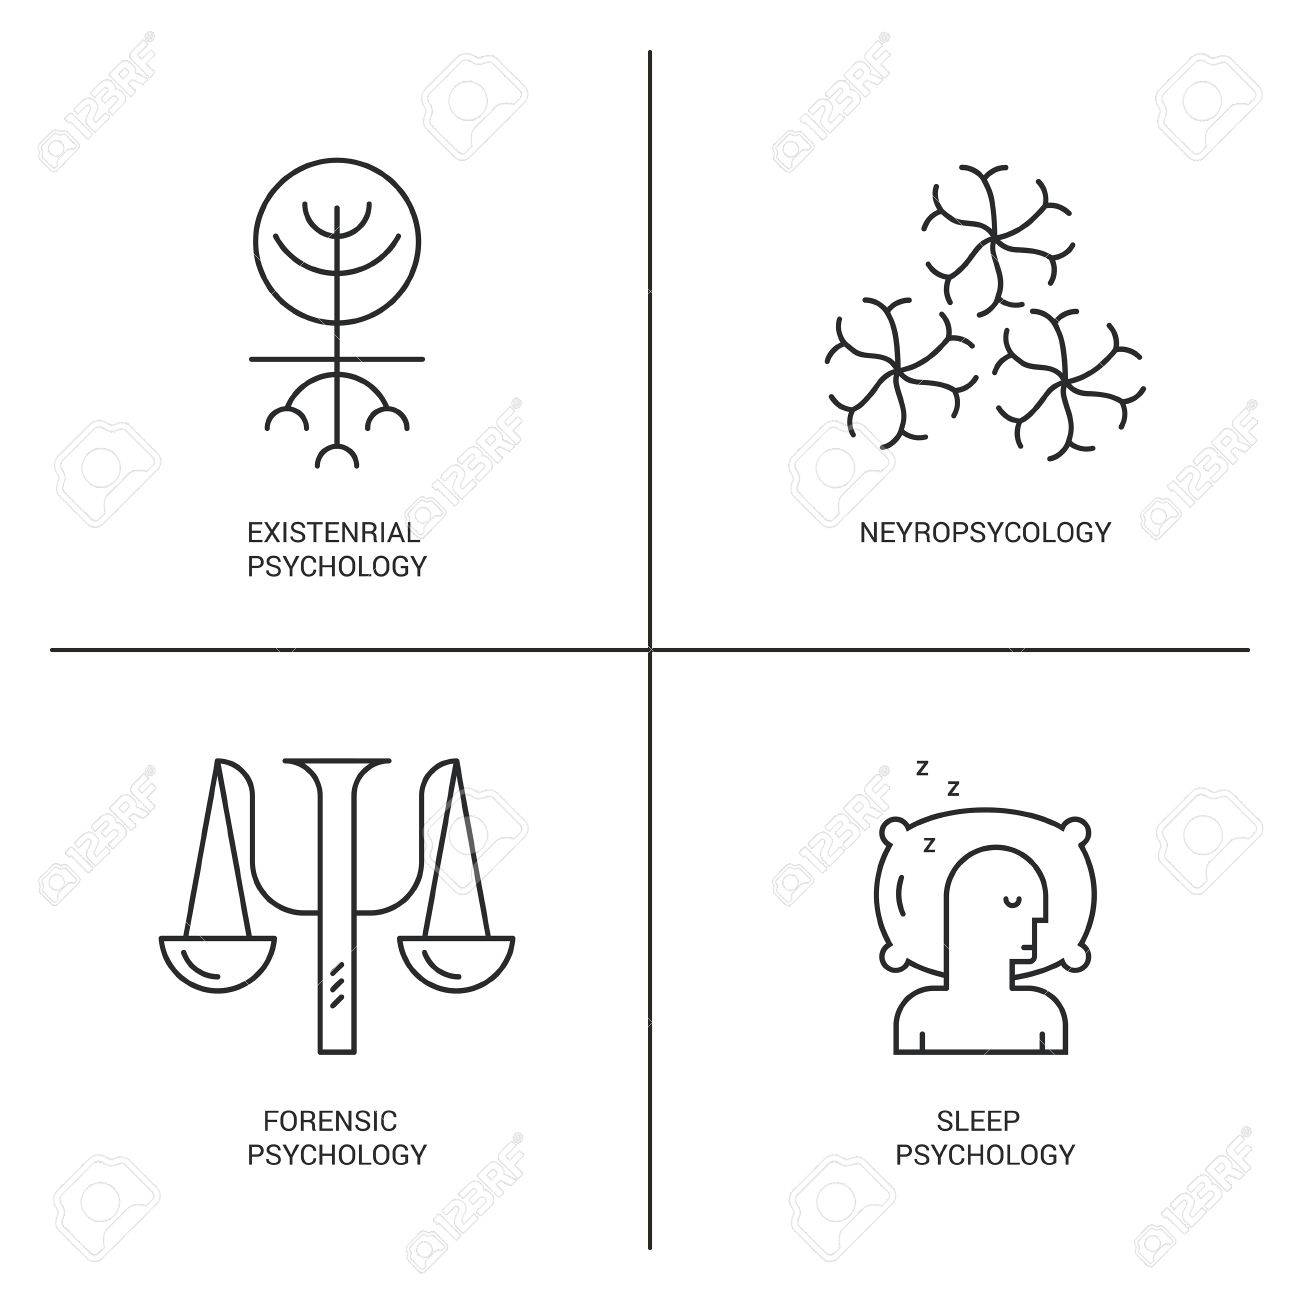 line style vector icons introducing different psychology theories including neyropsychology sleep psychologymental